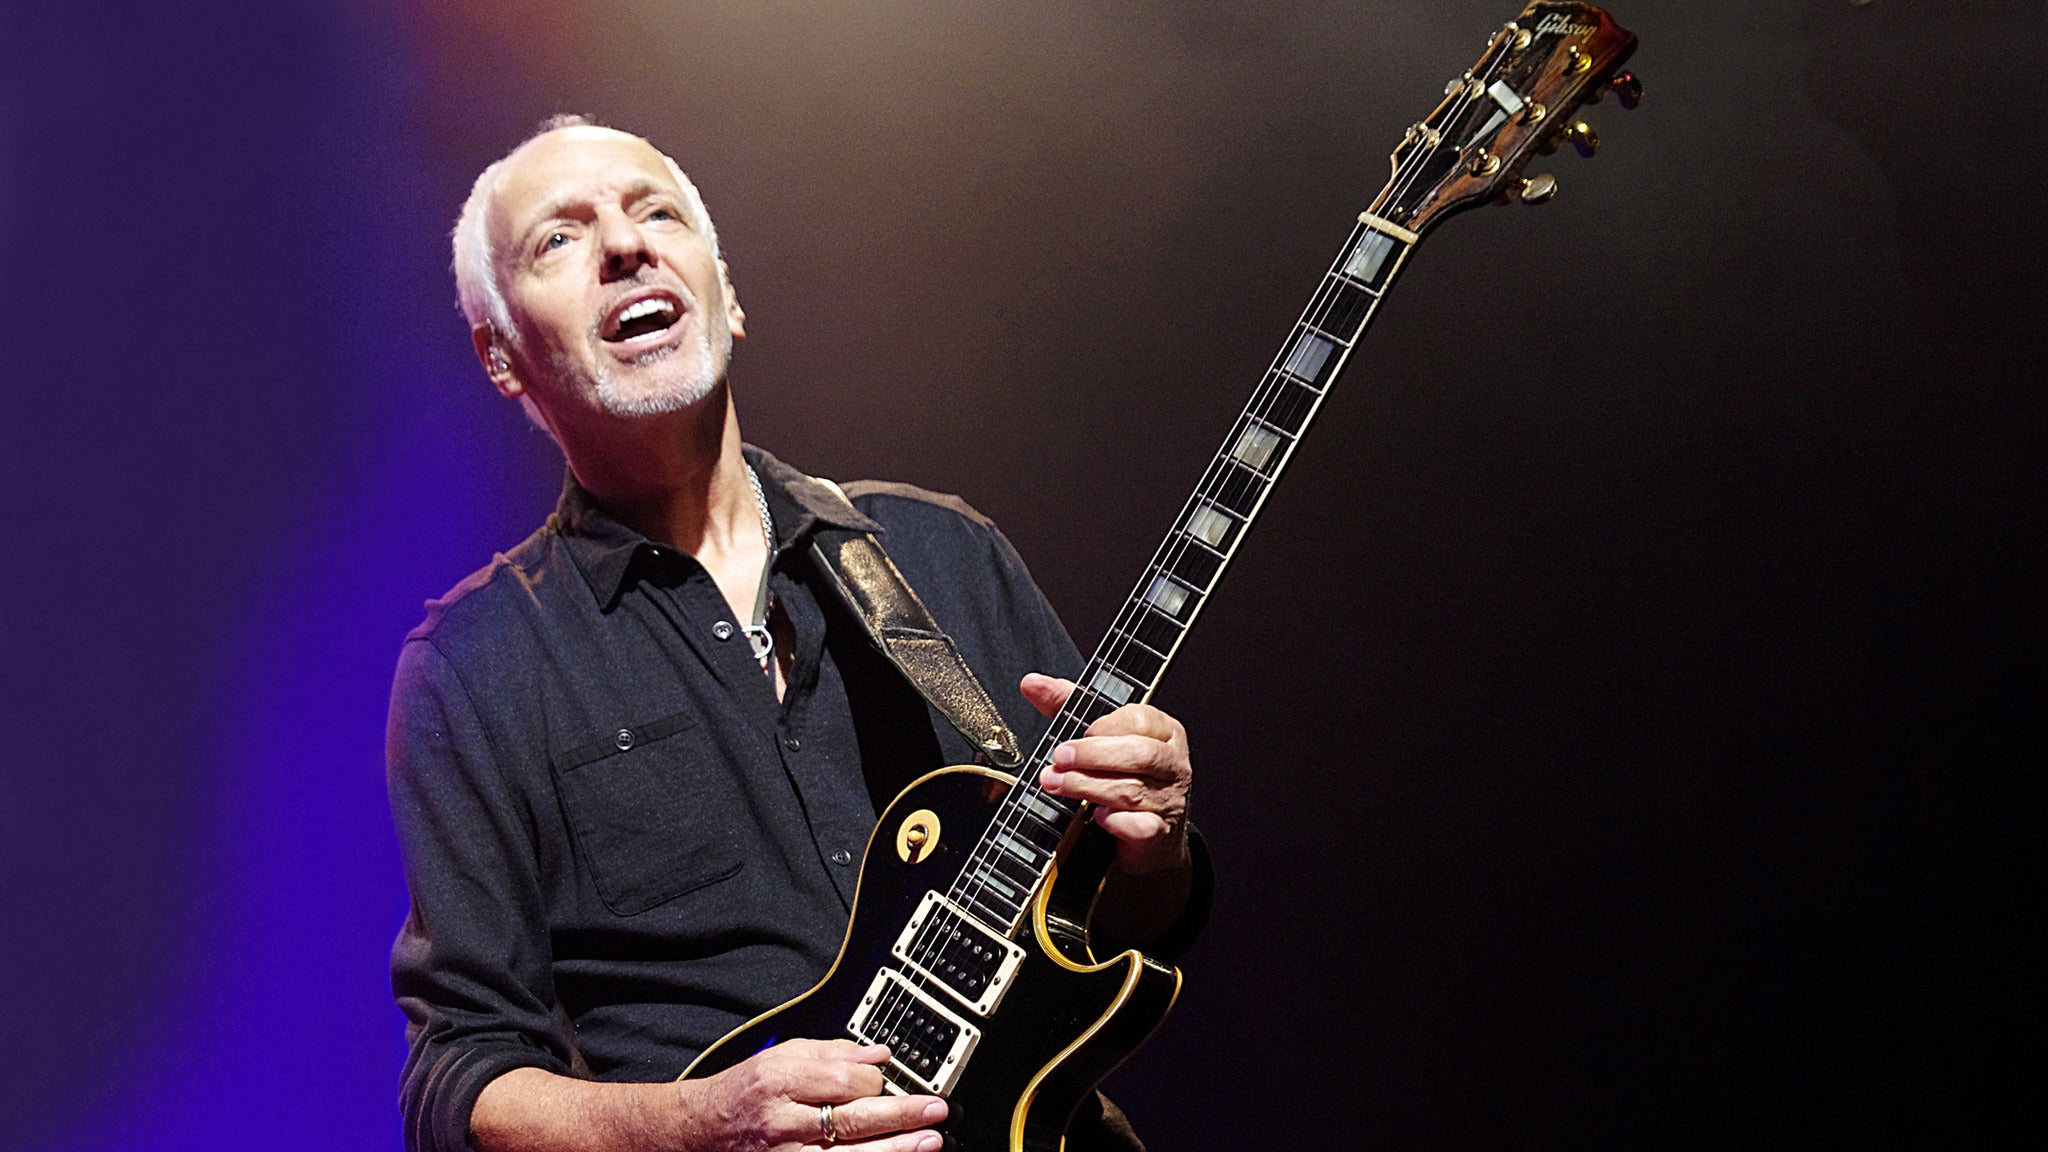 101 The Fox Presents Peter Frampton FINALE - The Farewell Tour